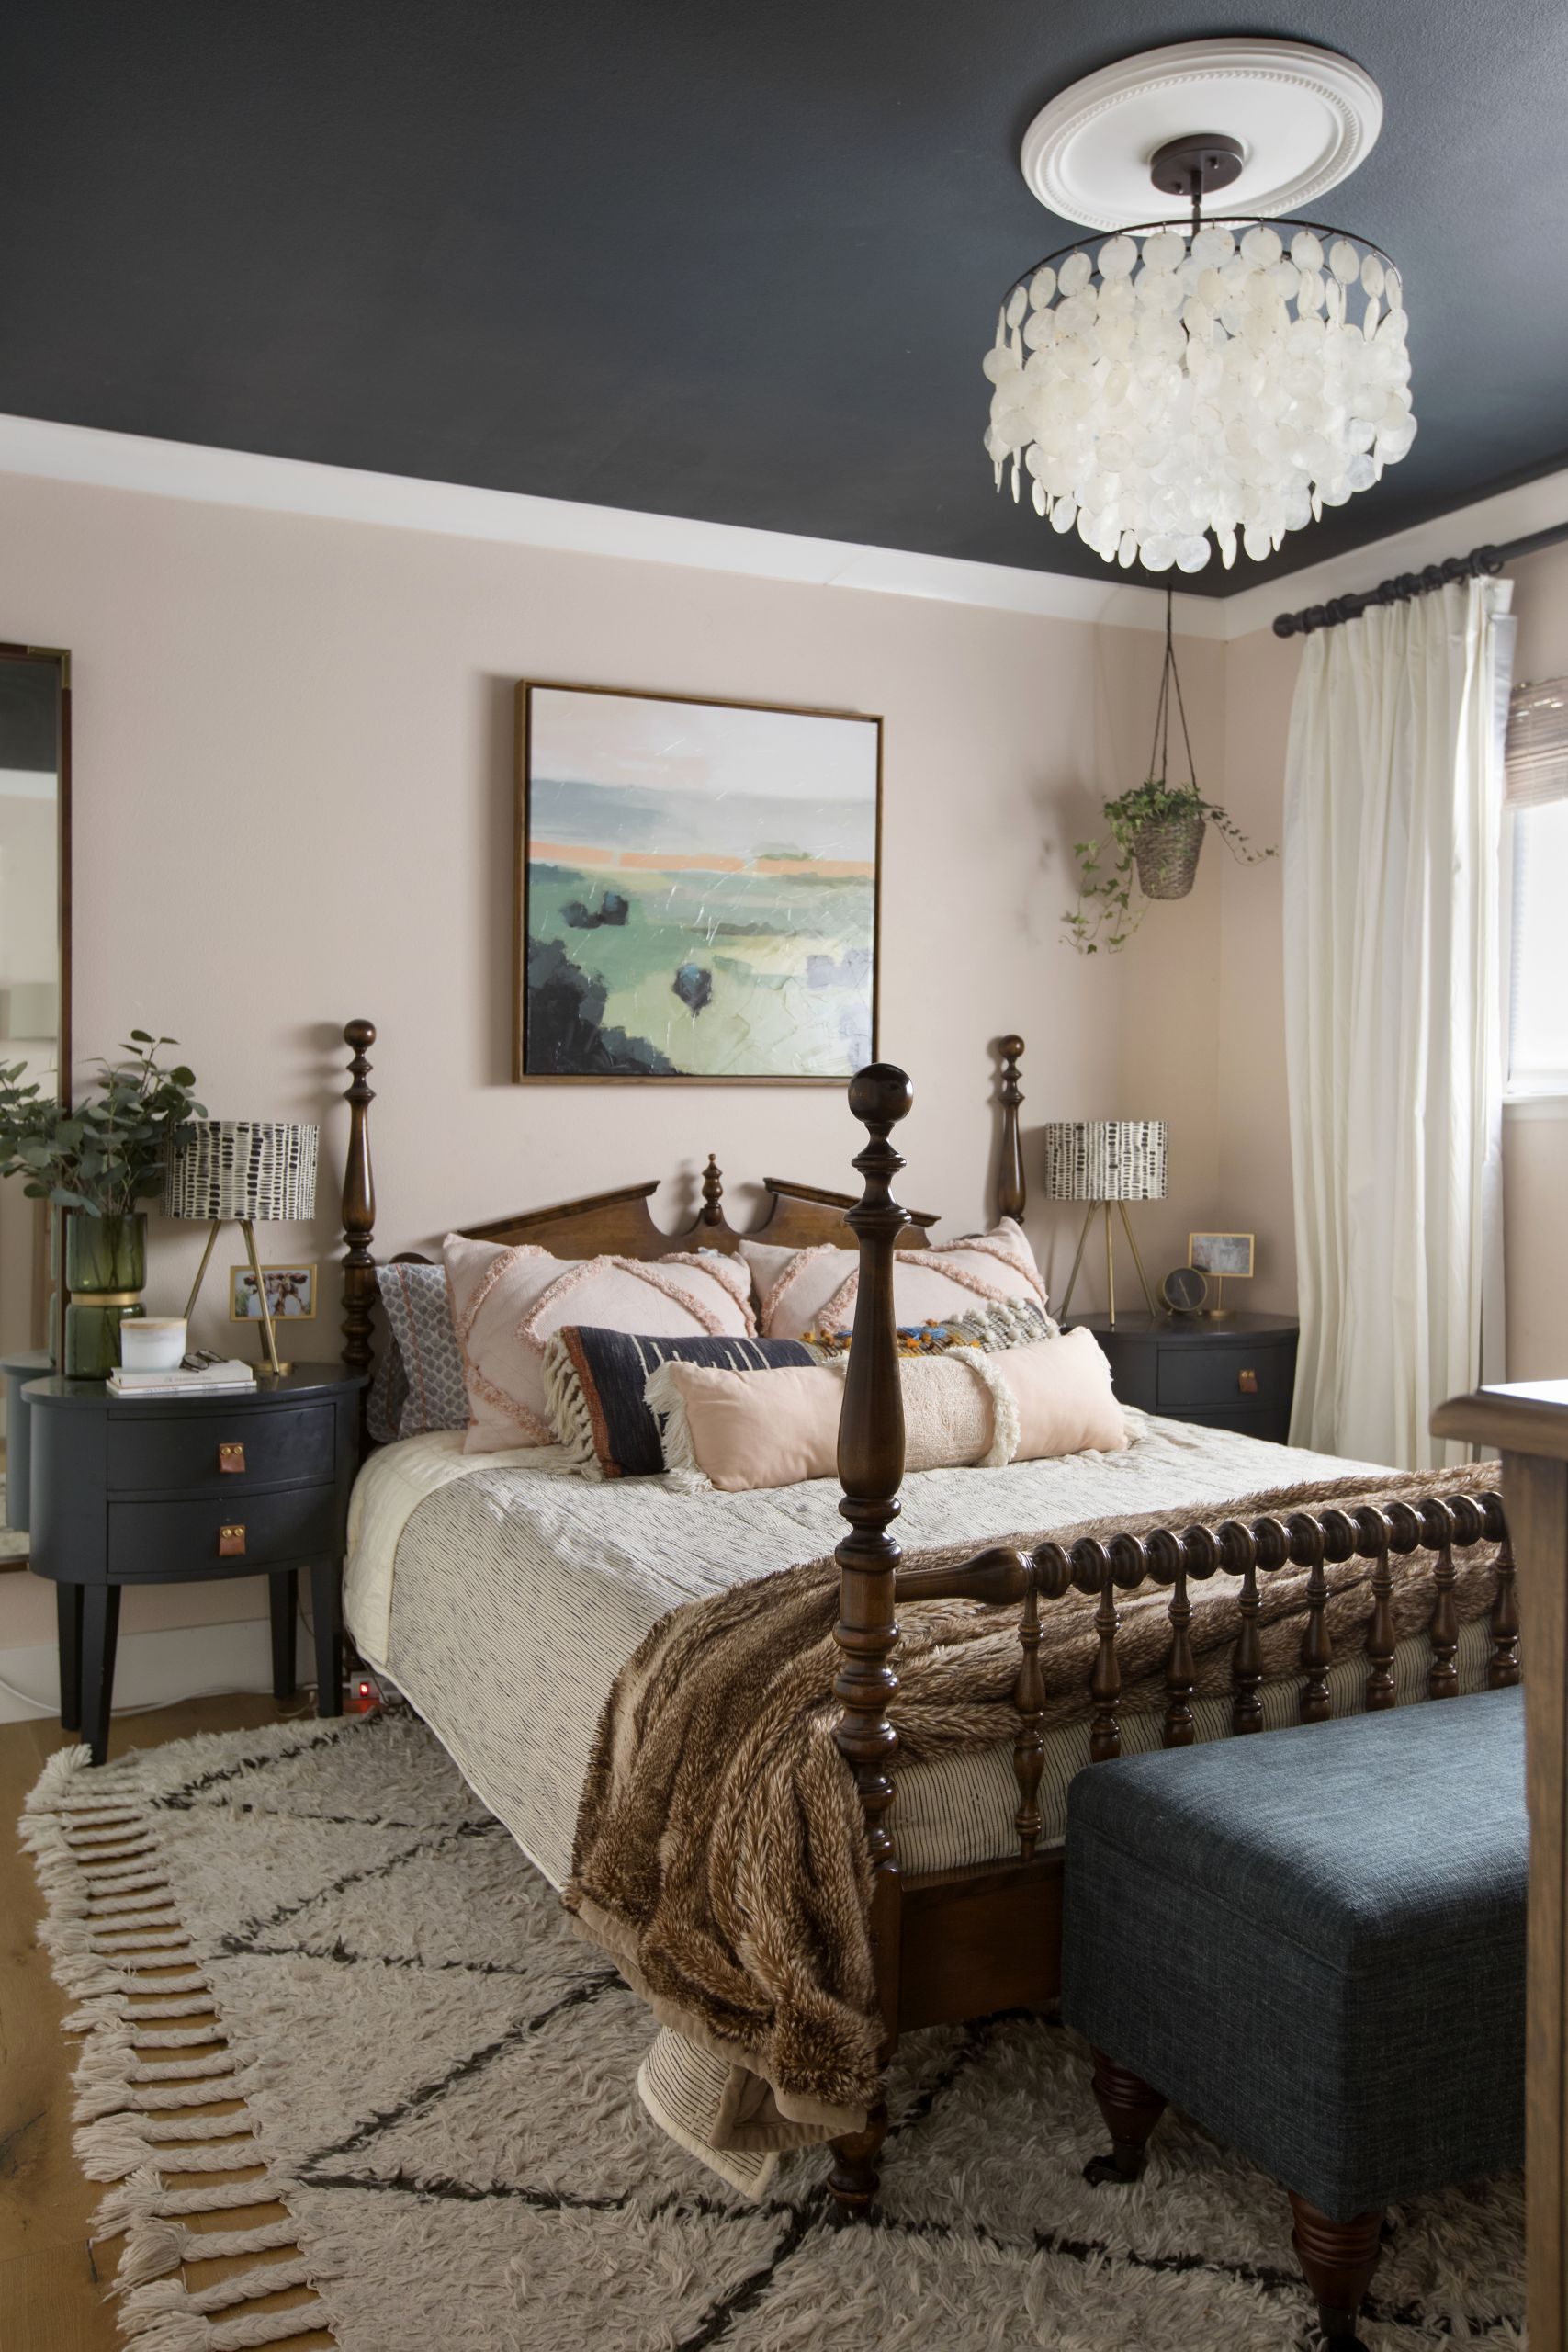 Bedrooms Lighting Ideas Ceiling Best Of Tract Home Renovation House Tour S In 2020 Fall Home Decor Home Bedroom Ceiling